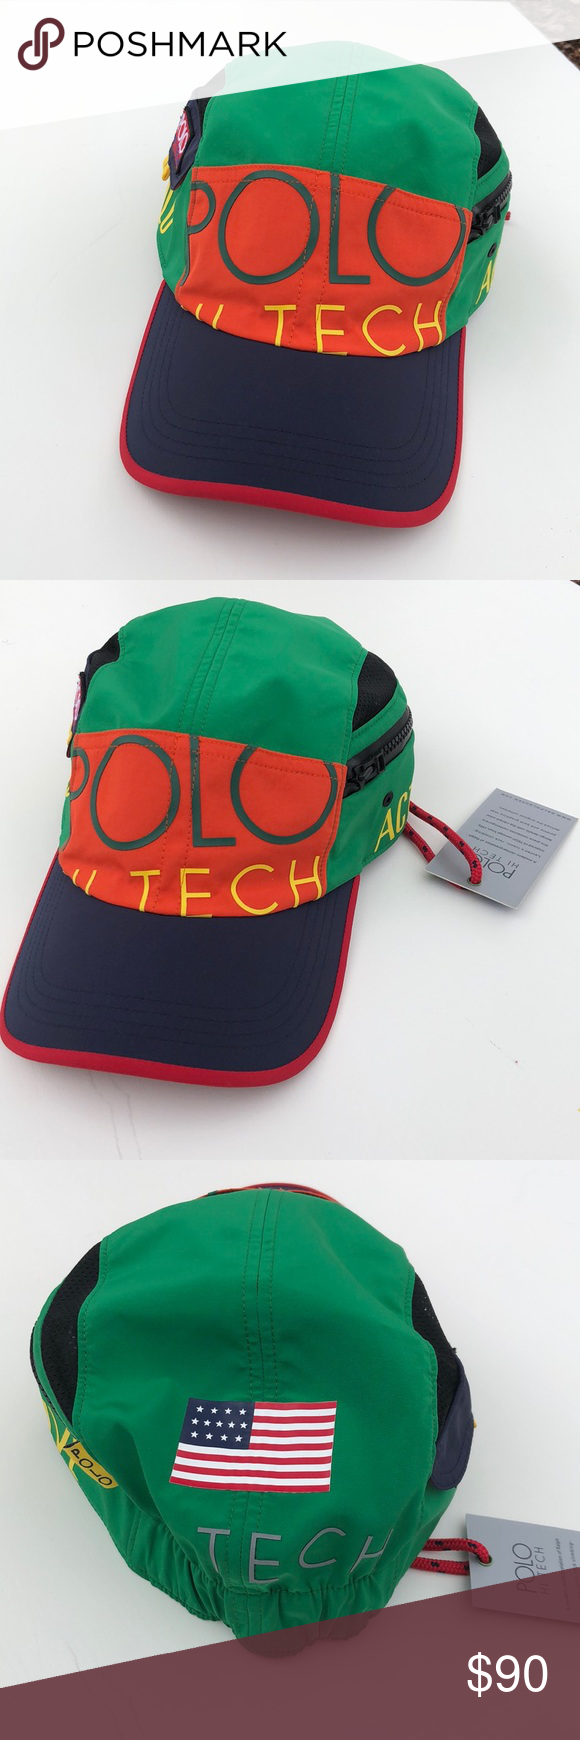 f5d8f0c5d Ralph Lauren Polo Hi tech hat... Brand New!! Brand New with tags ...